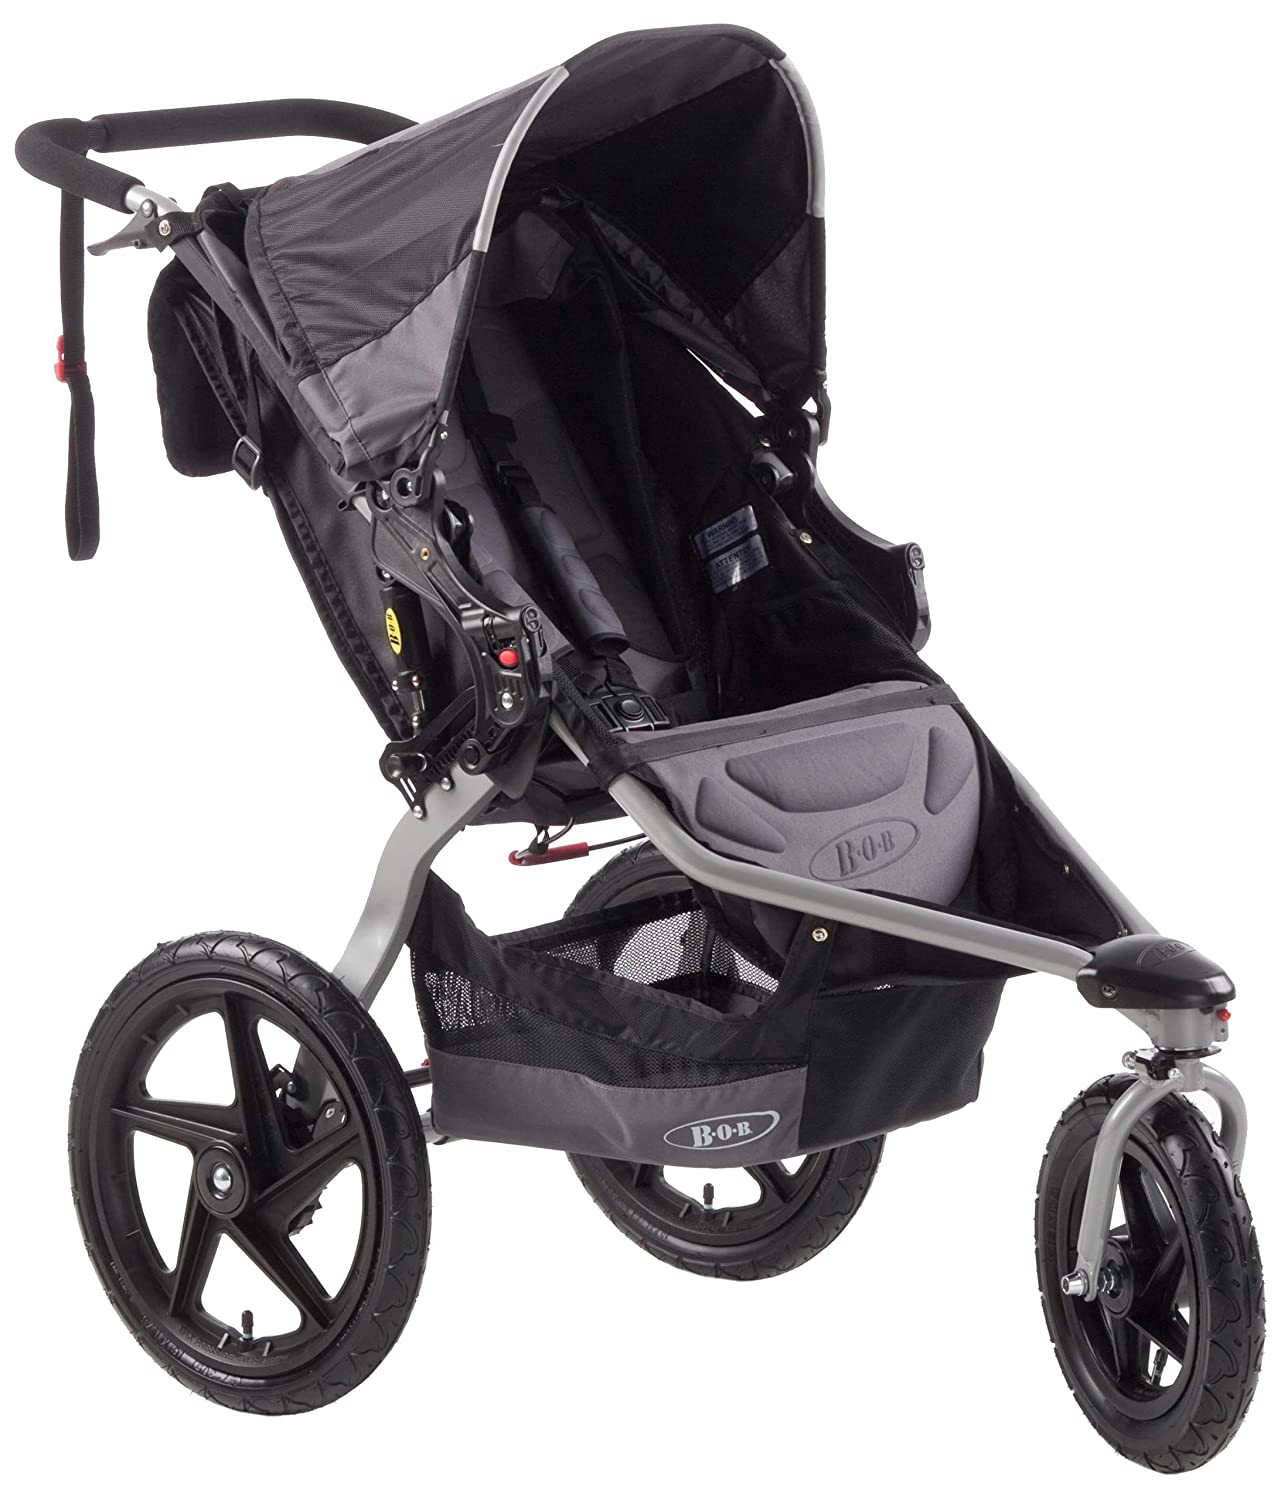 Amazon.com : BOB Revolution SE Single Stroller, Black : Jogging ...